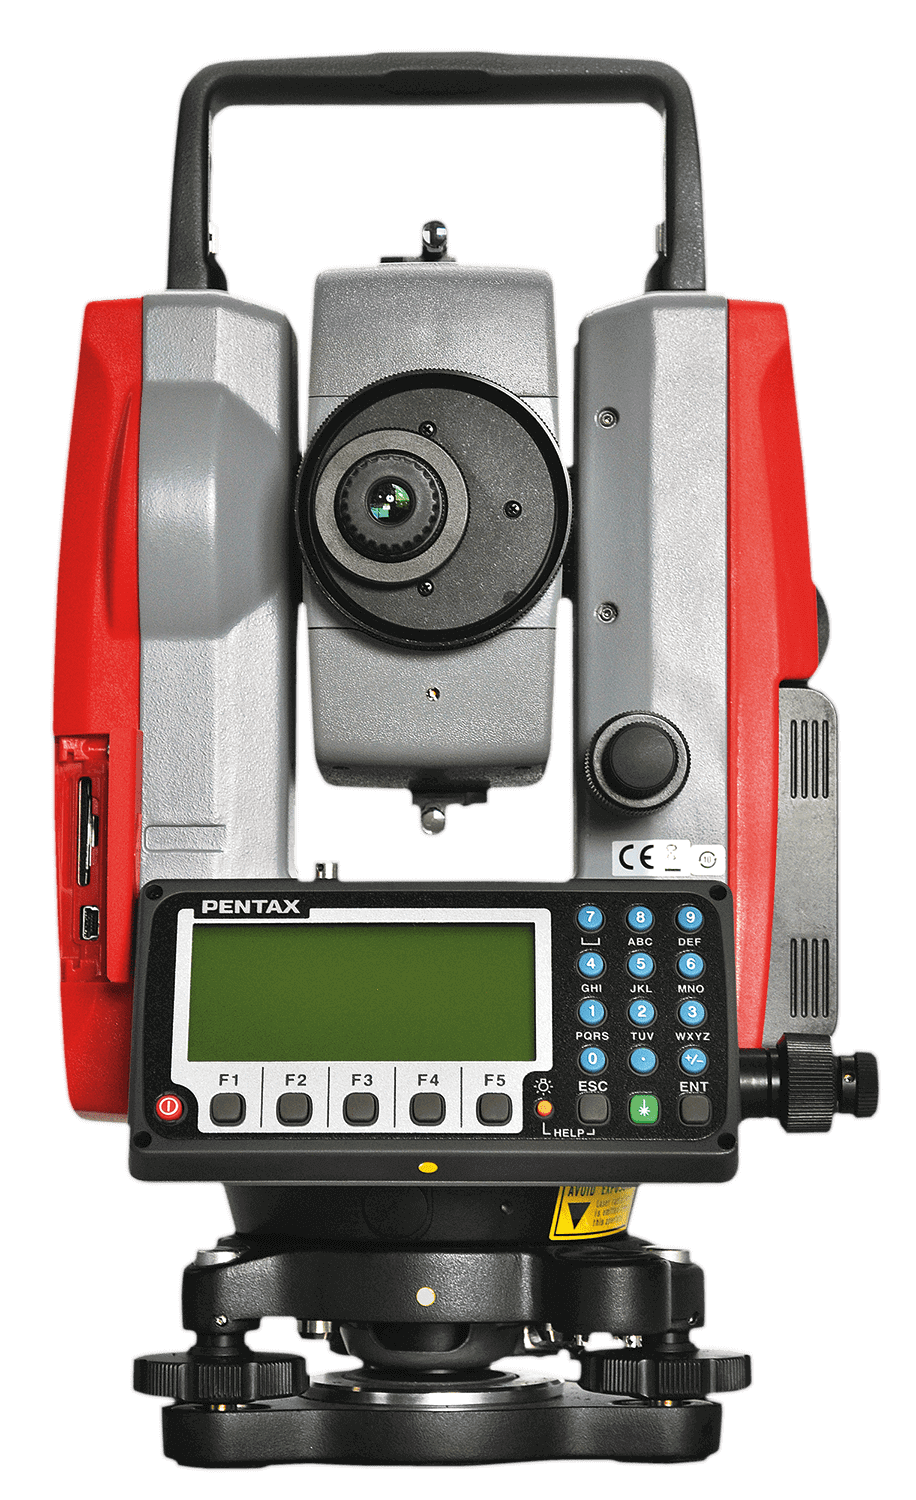 TOTAL STATIONS – PENTAX Surveying